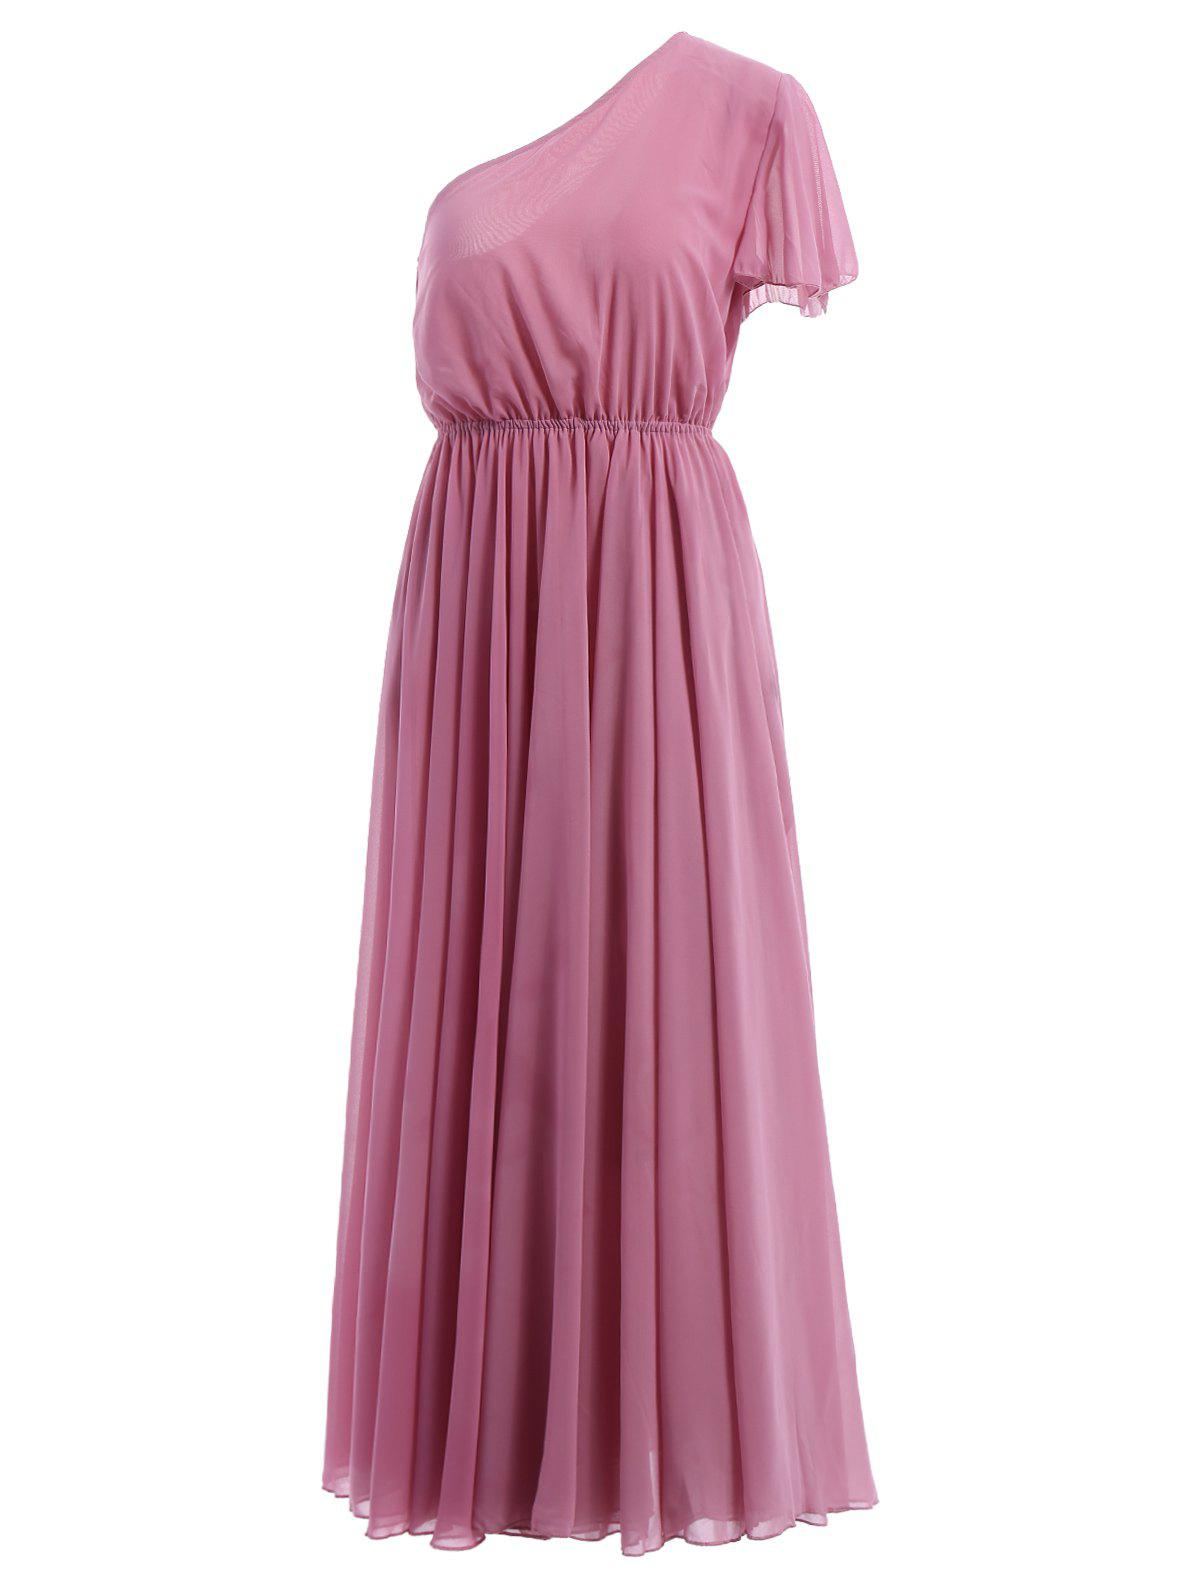 Sweet Women's One-Shoulder Short Sleeve Maxi Dress - PINK S